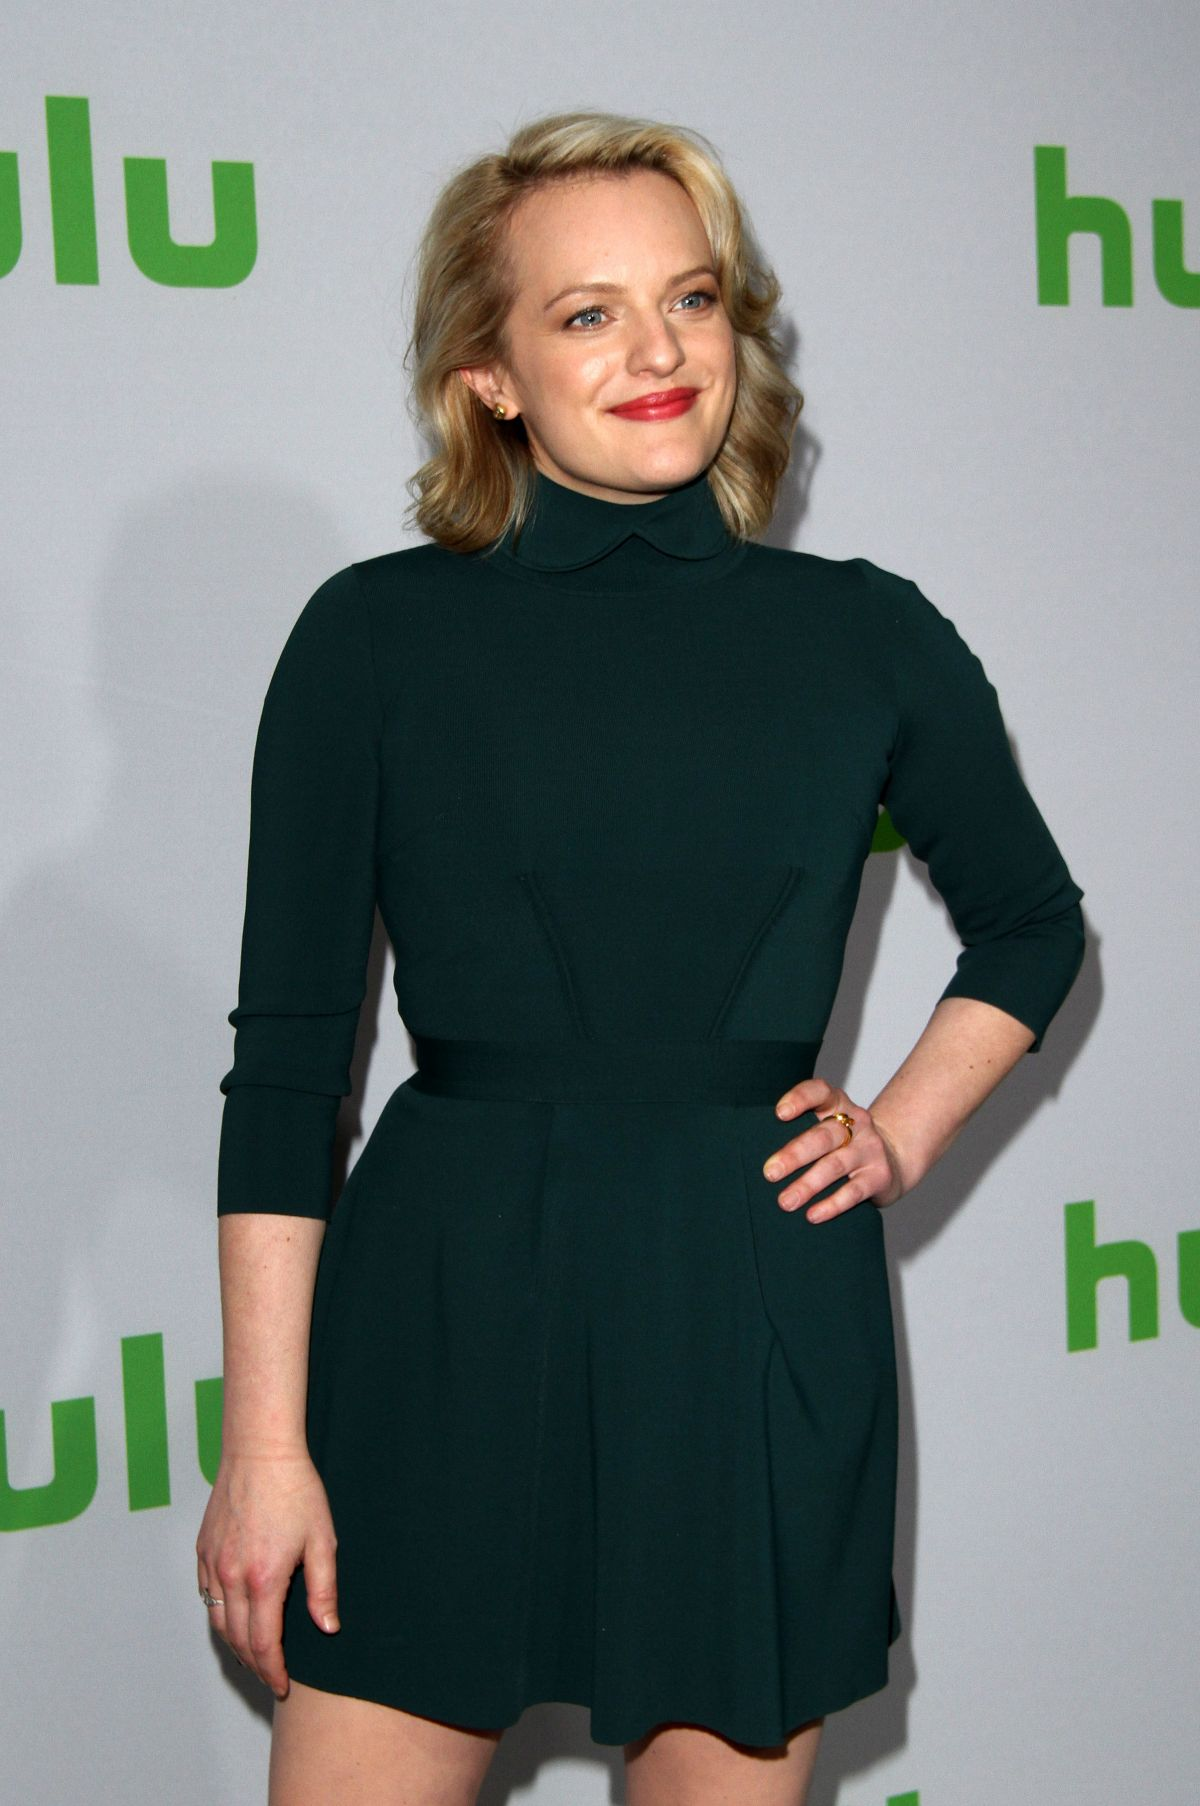 pictures Elisabeth moss tca awards at the tca summer press tour in la